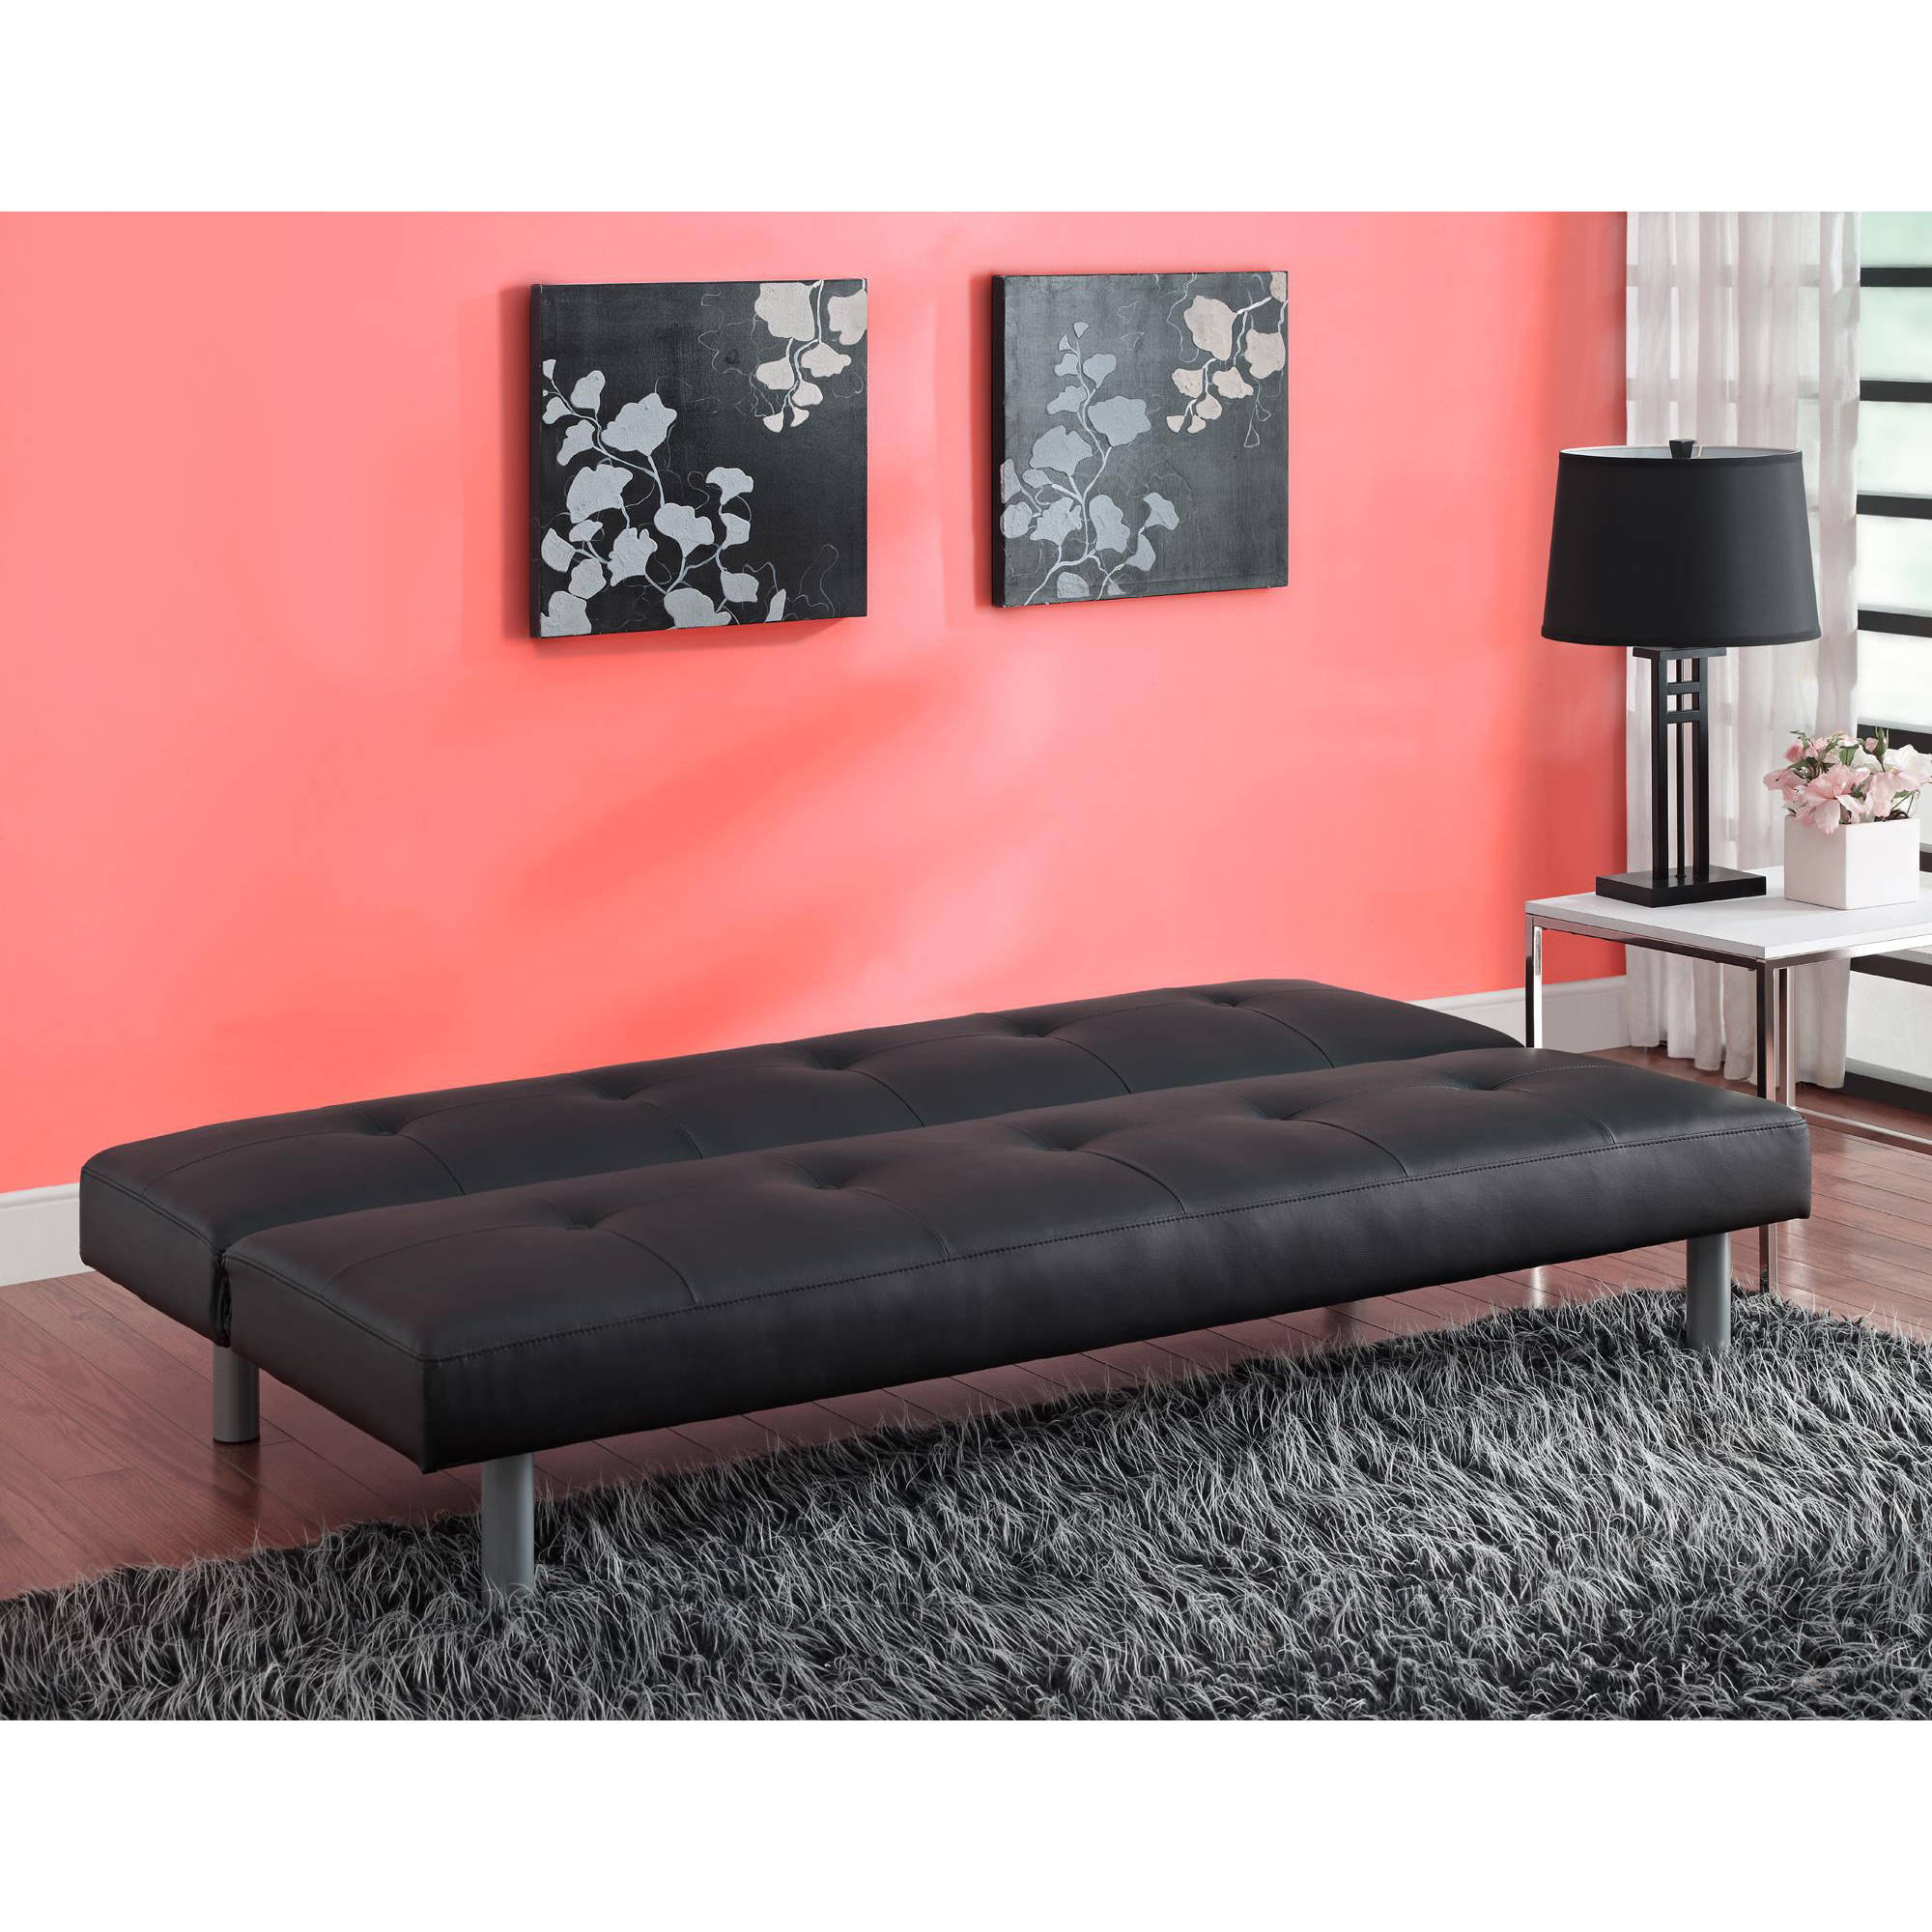 over bed sourceimage futons bedroom eng details furniture bunk products dhp futon twin